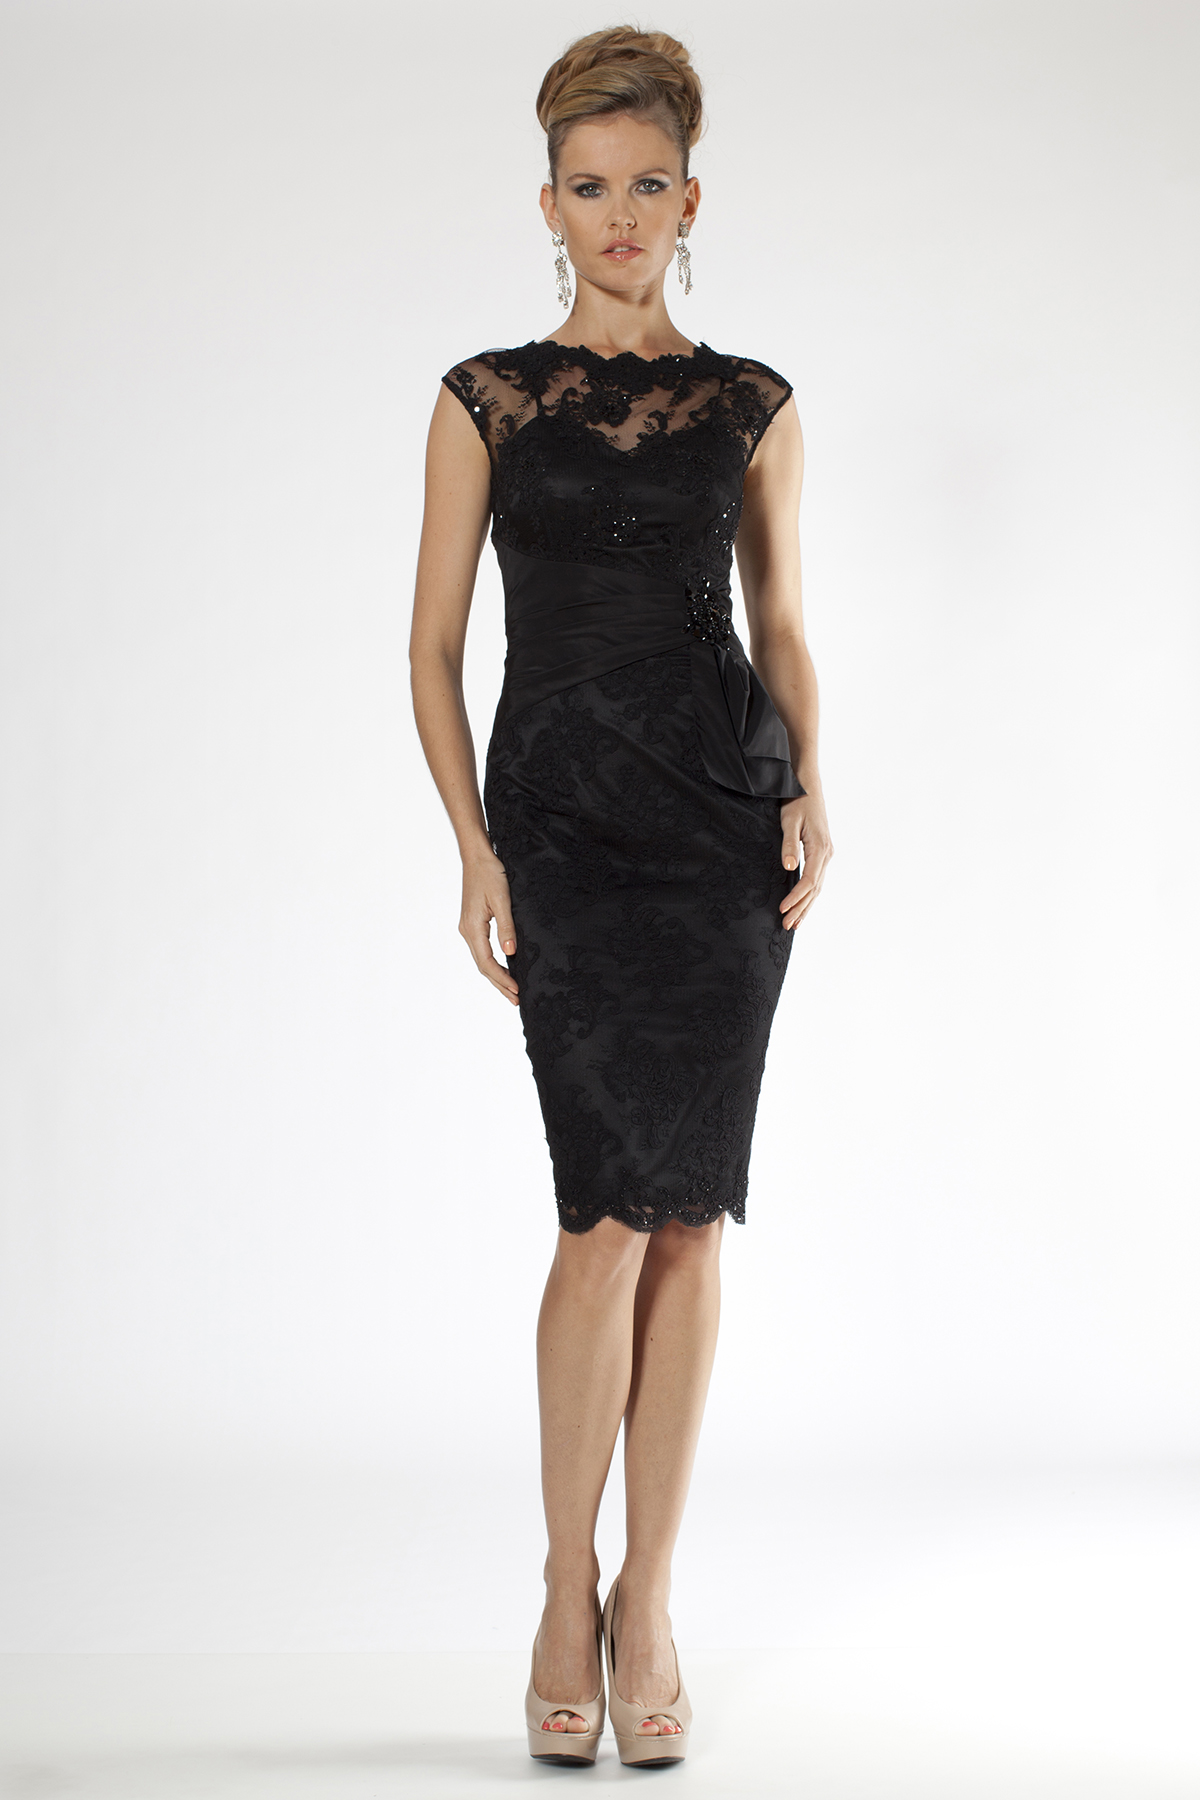 elegant black lace dresses - photo #47